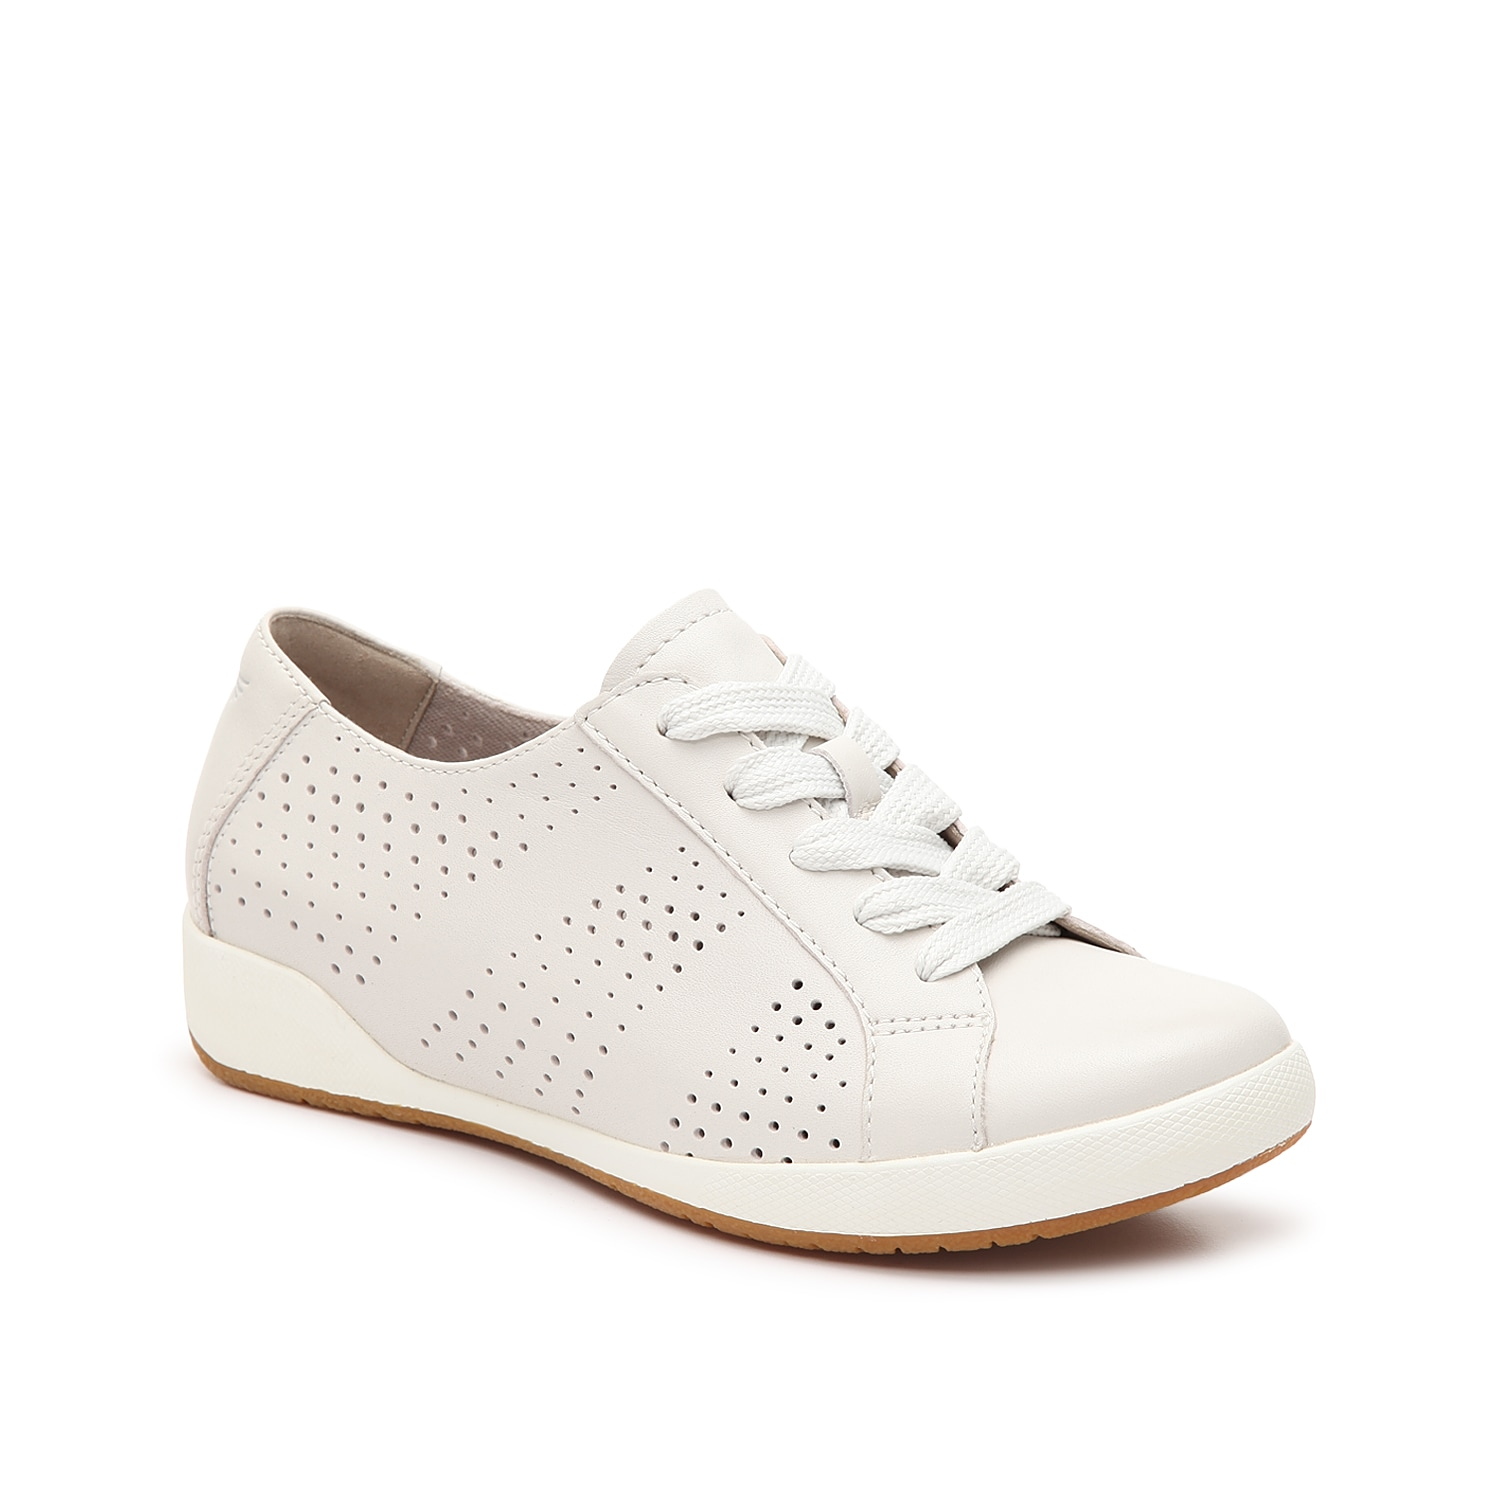 The Orli sneaker from Dansko will bring you all the comfort and cushion. This lace-up pair is fashioned with a laser cut leather upper and a removable insole for daylong wear!